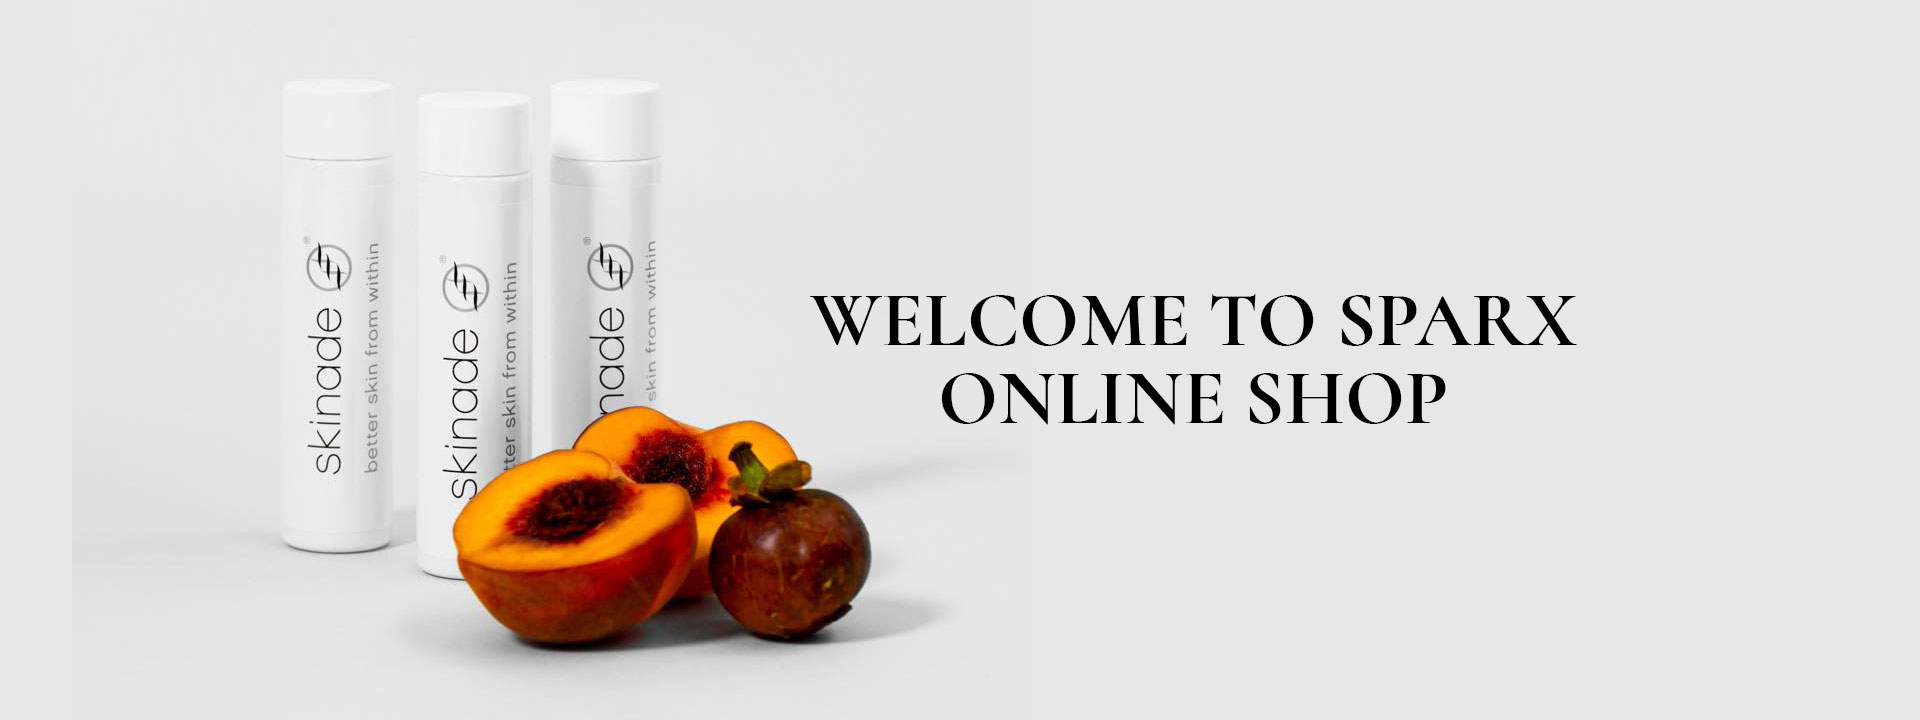 Welcome to Sparx Online Shop banner